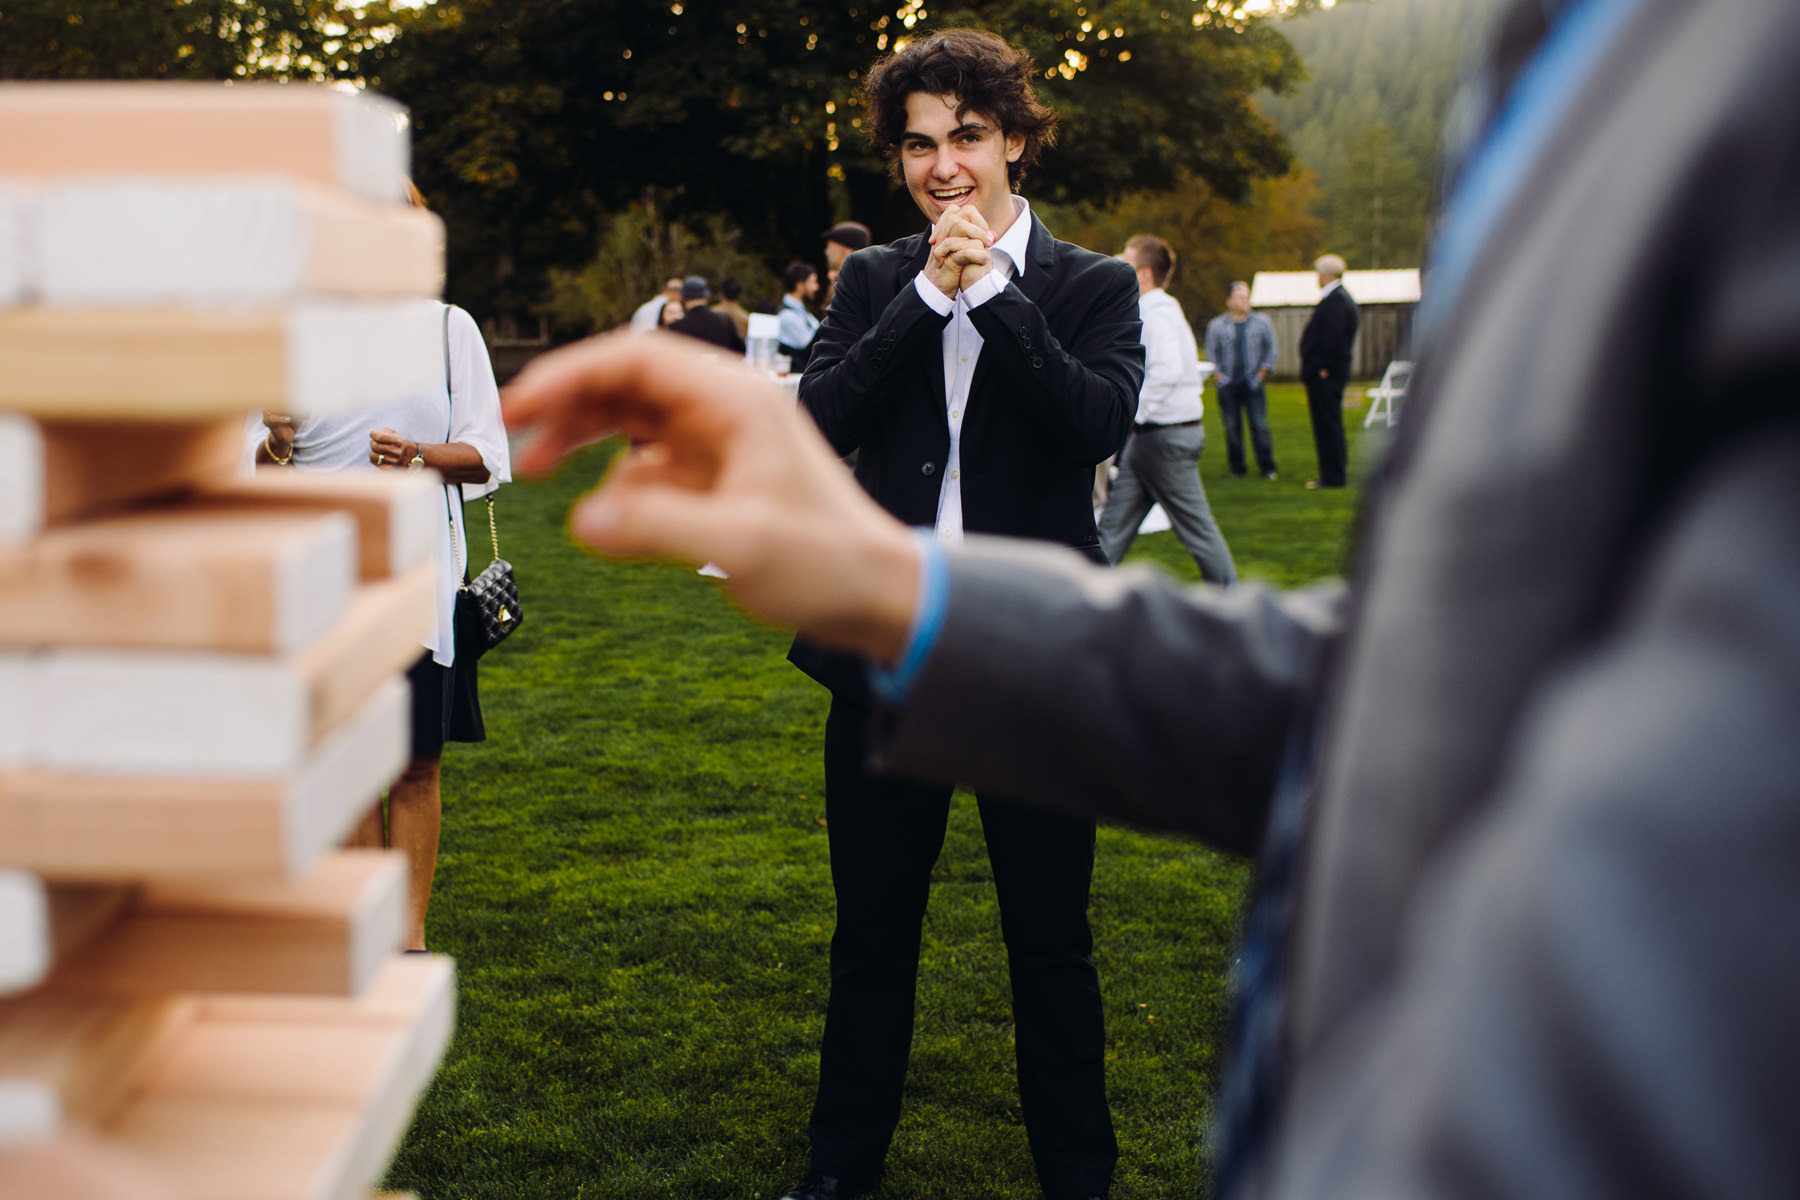 Pomeroy Farms wedding jenga